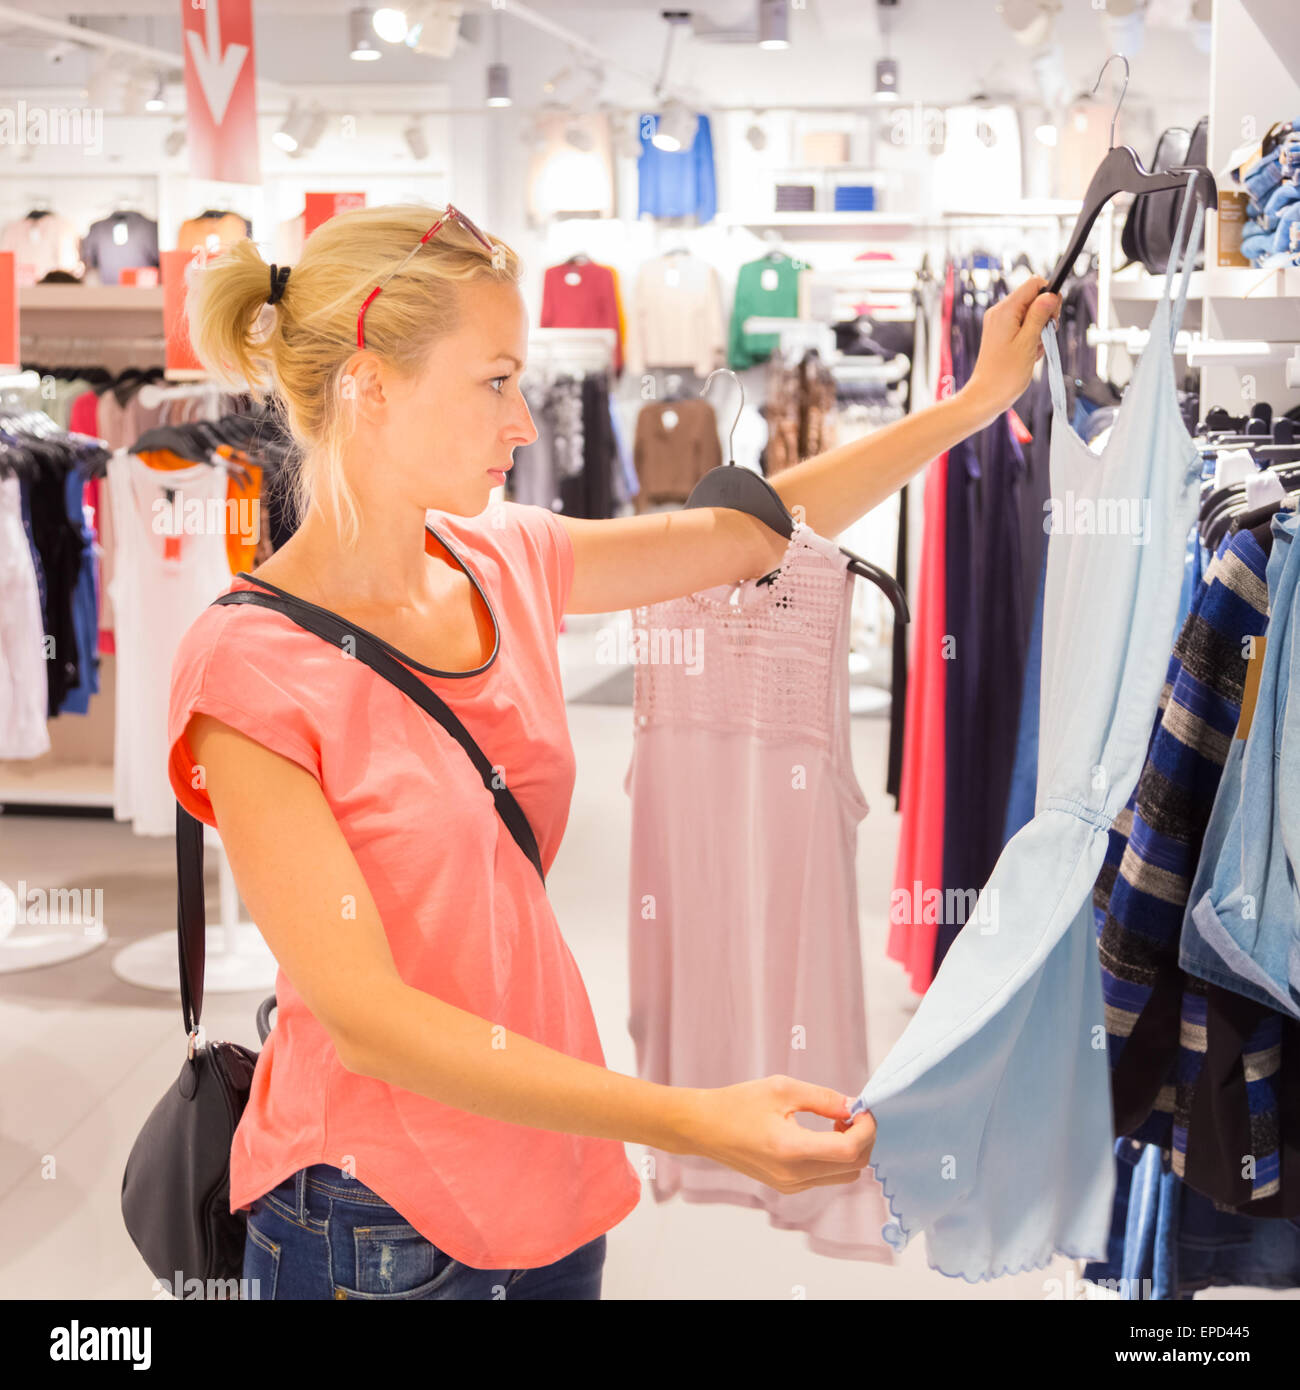 Beautiful woman shopping in clothing store. - Stock Image